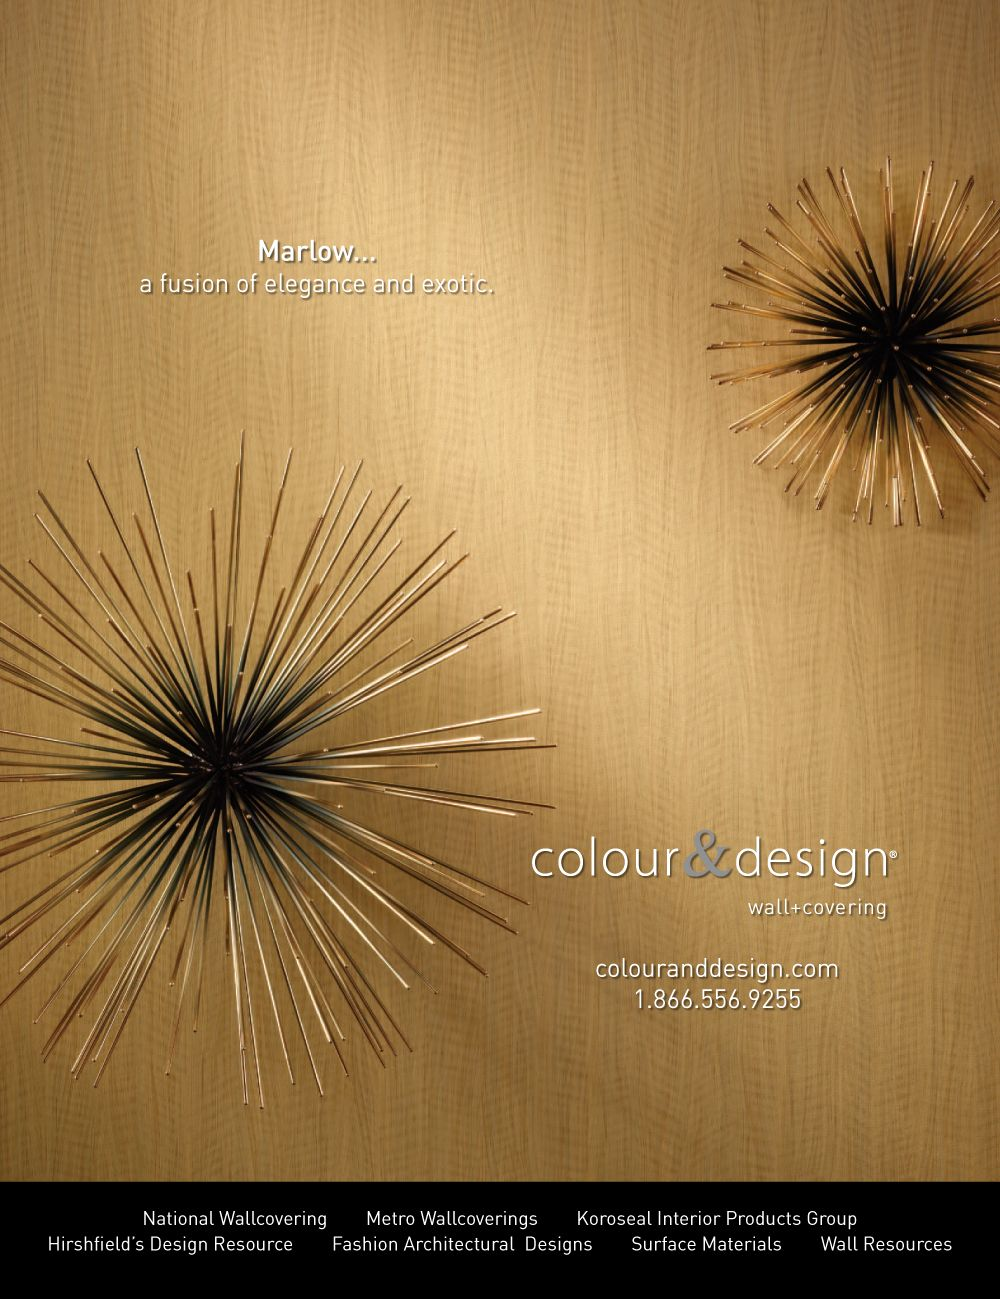 Colour Designs Marlow Wallcovering Advertisement for October